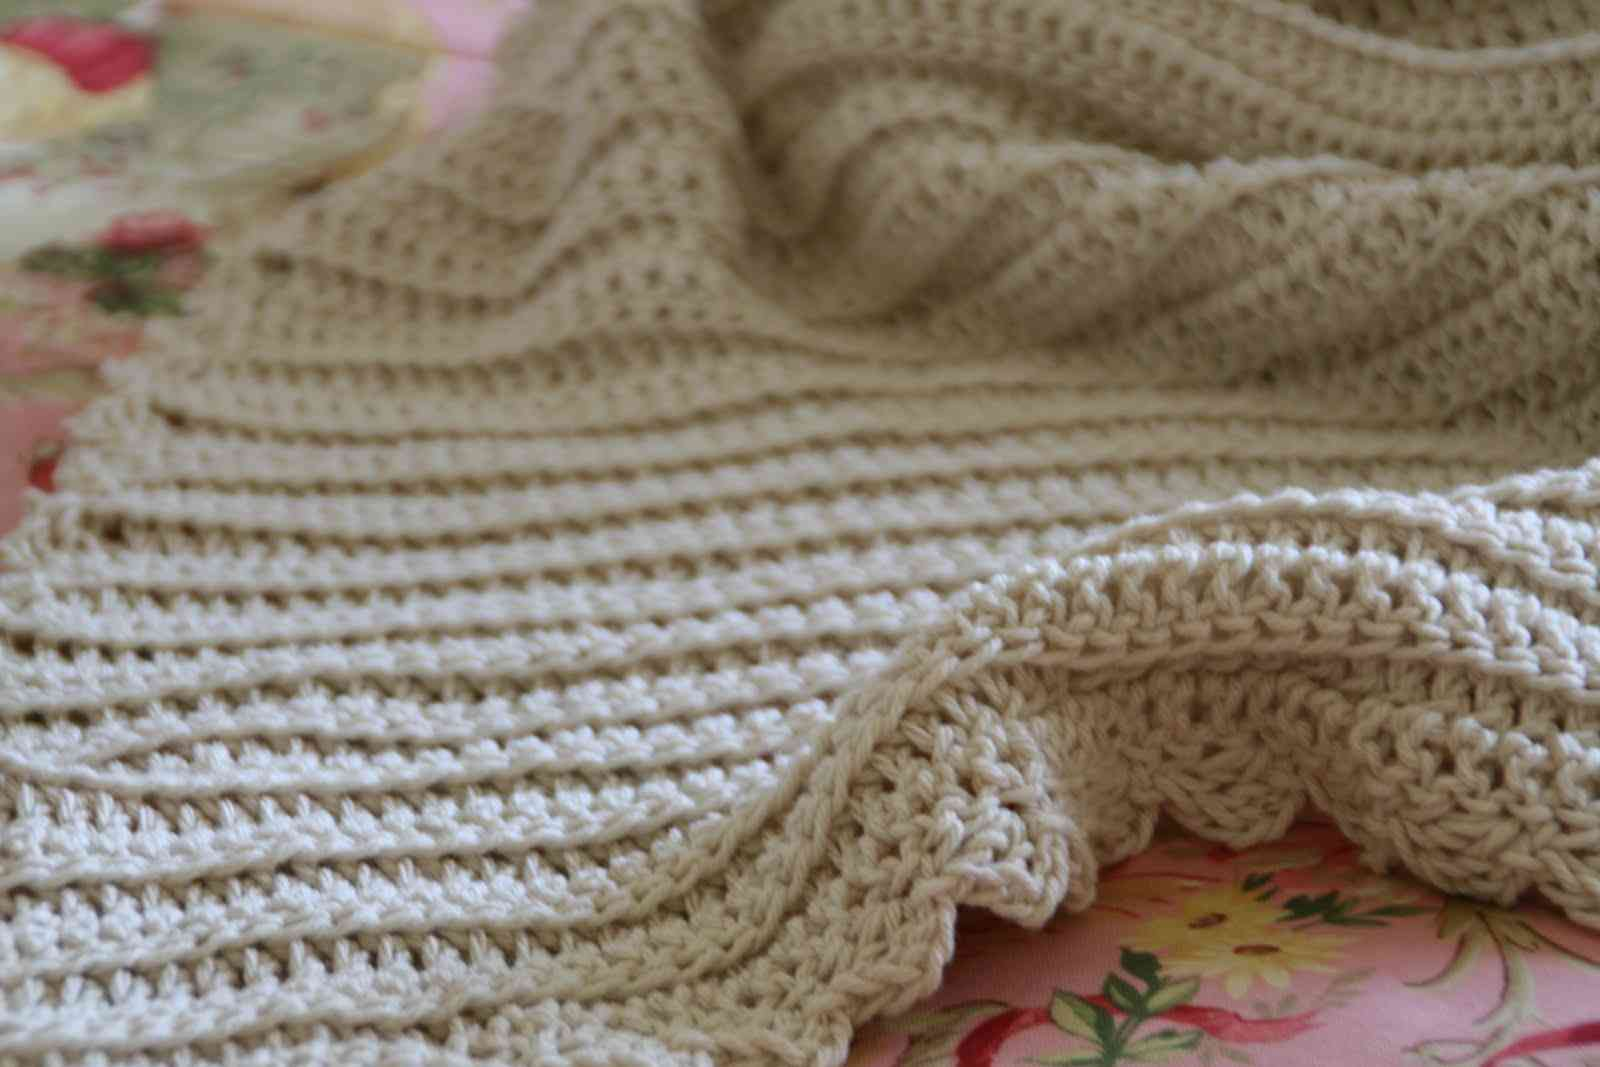 Different Crochet Patterns Baby Blanket : 15 Most Popular Free Crochet Baby Blanket Patterns